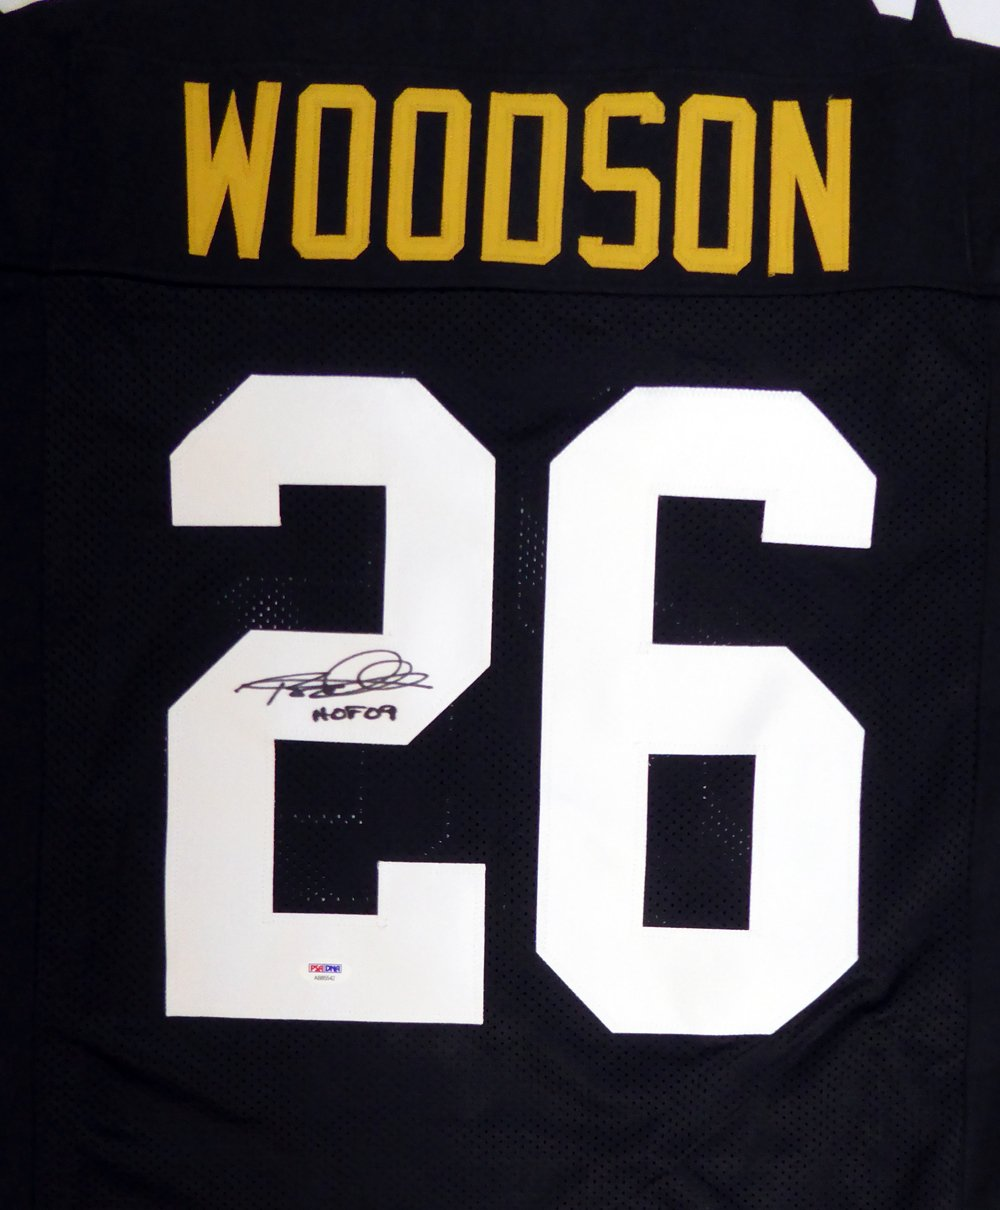 PITTSBURGH STEELERS ROD WOODSON AUTOGRAPHED BLACK JERSEY'HOF 09' PSA/DNA STOCK #105709